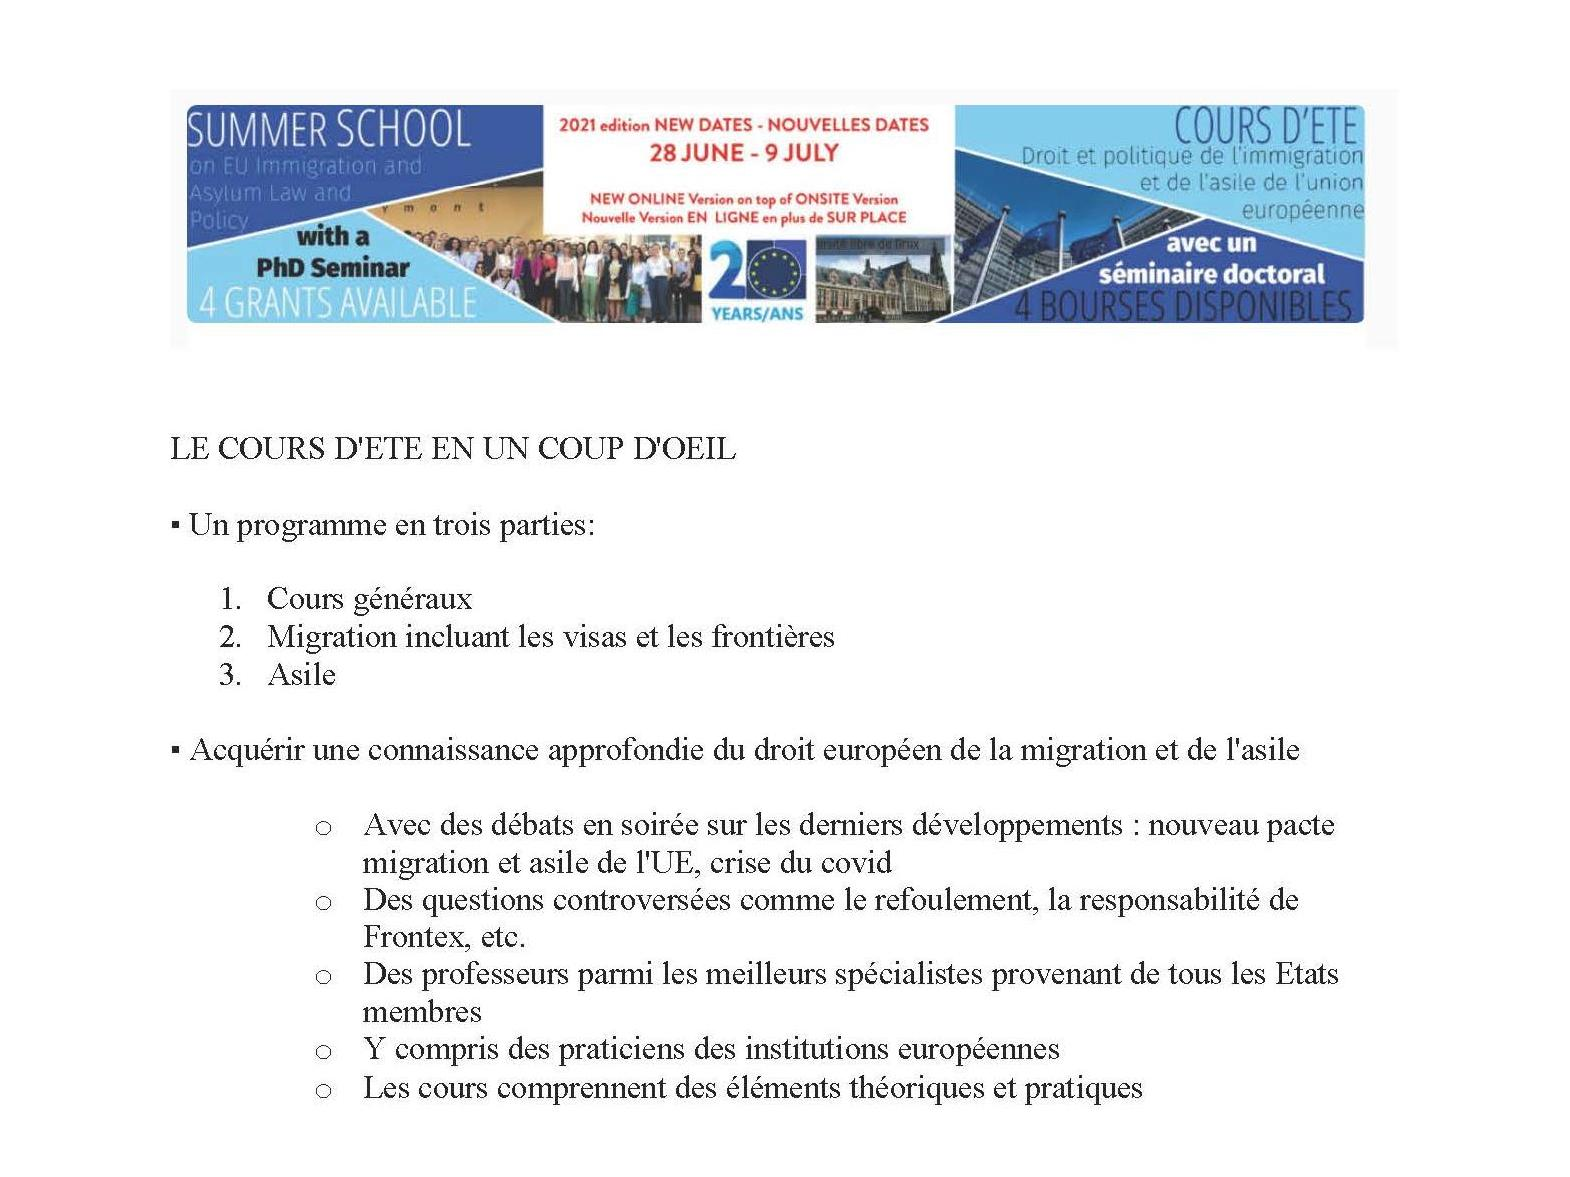 Odysseus Summer School on EU Immigration and Asylum Law and Policy (2021 Edition)